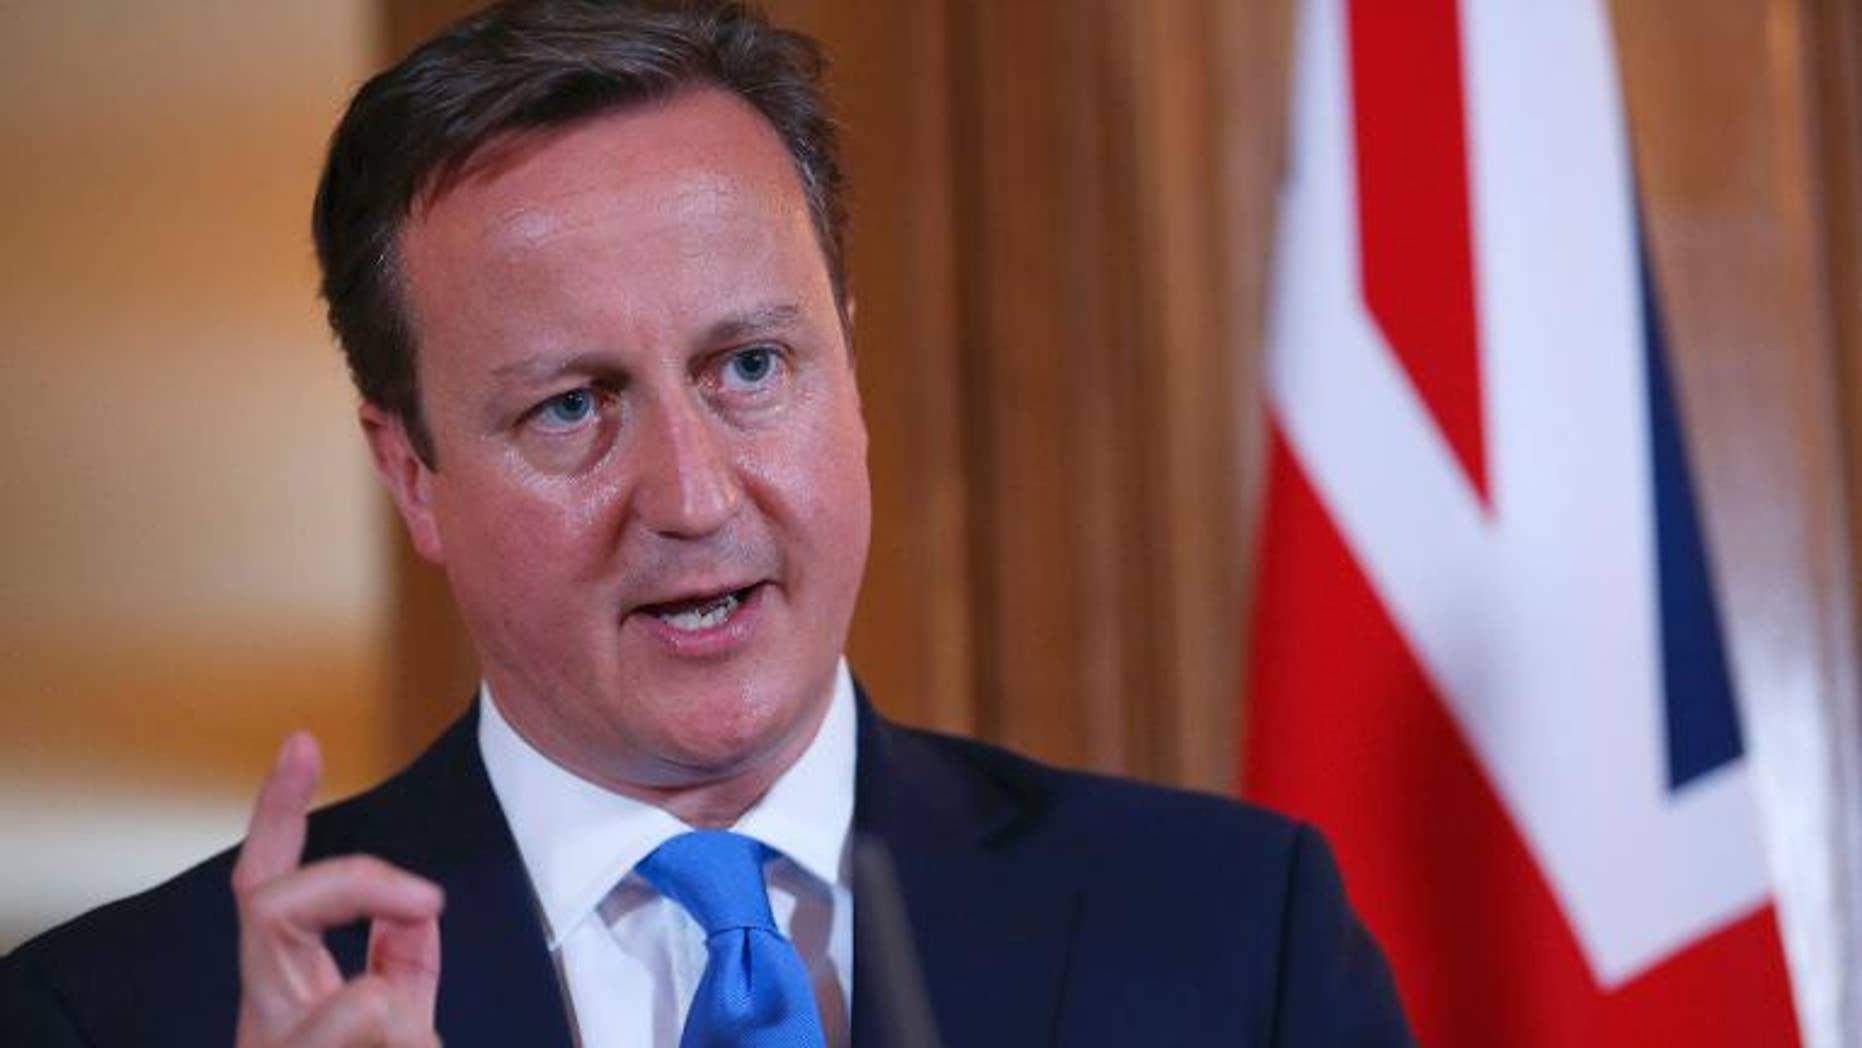 Prime Minister David Cameron speaks during a press conference in London on July 17, 2013